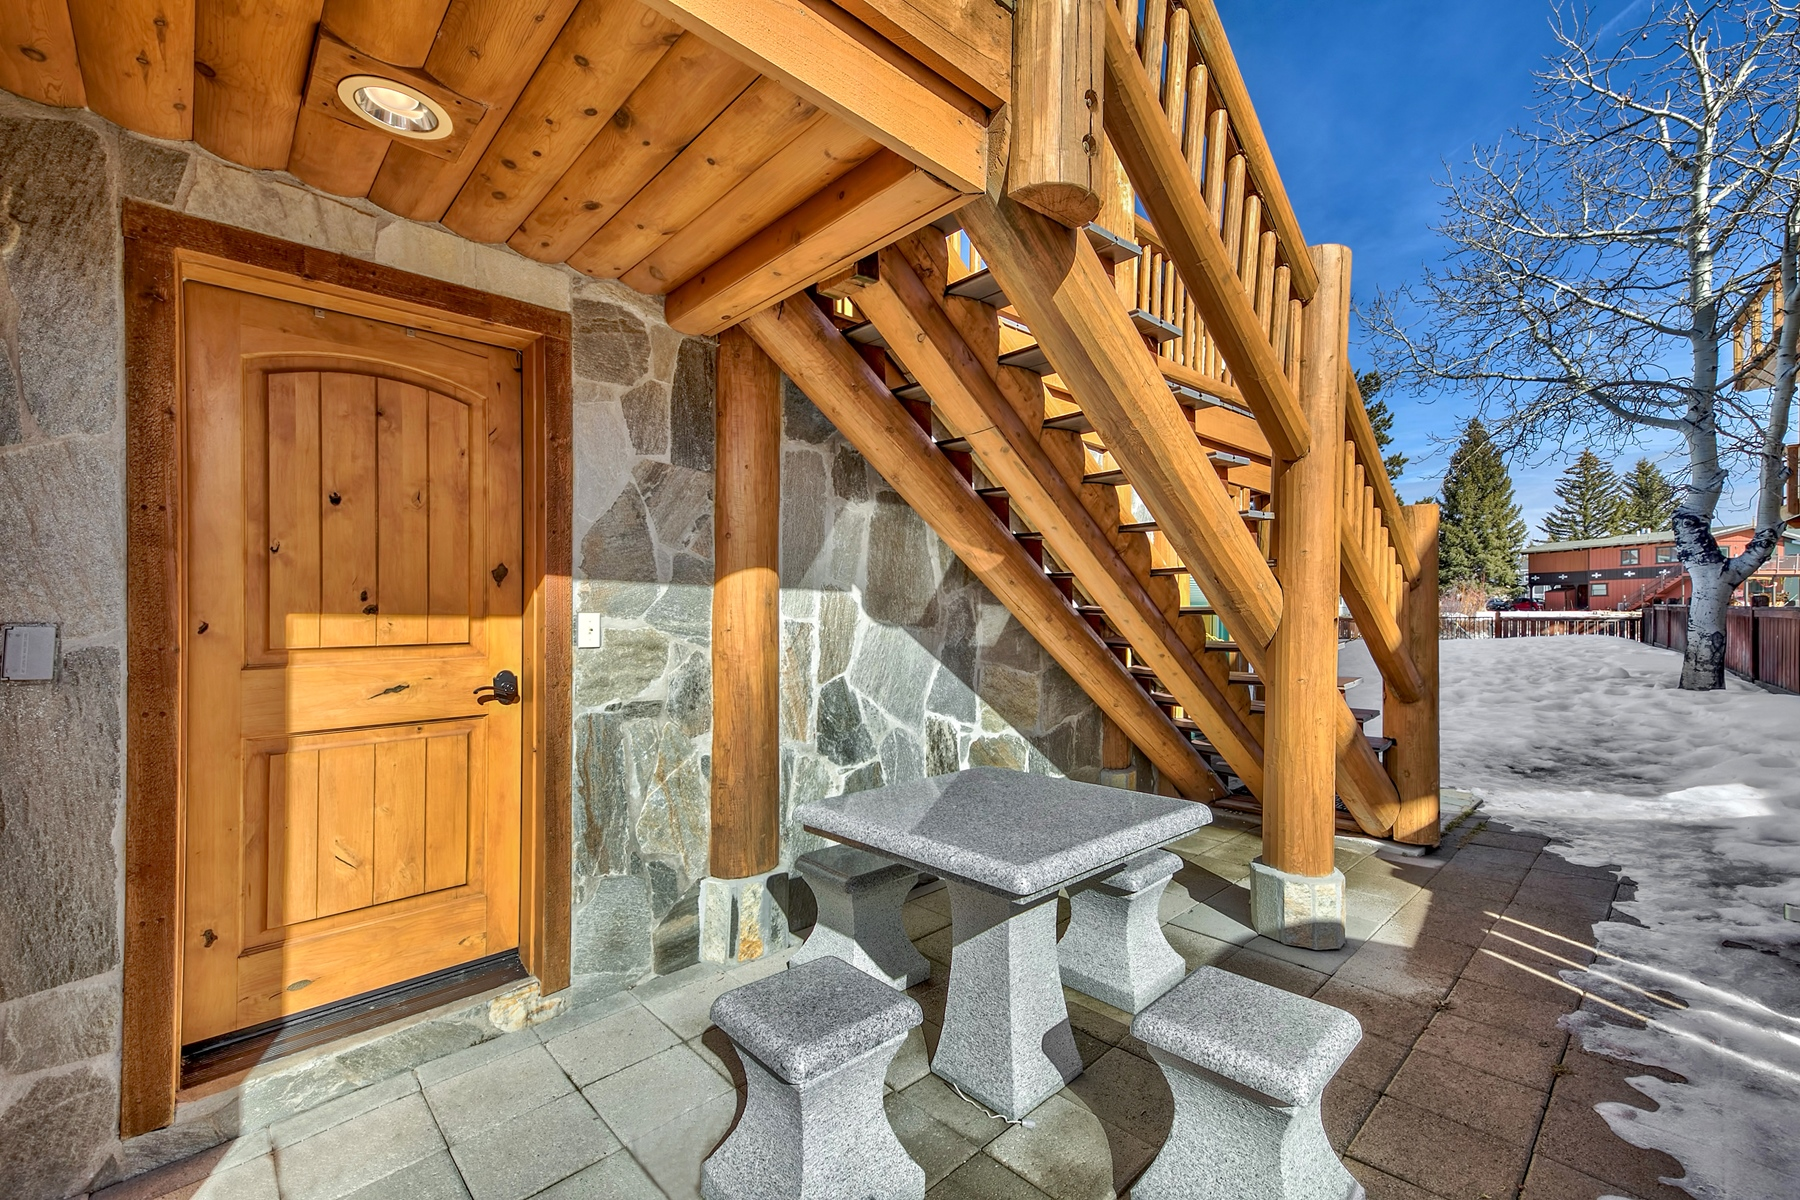 Additional photo for property listing at 1853 Venice Drive, South Lake Tahoe, CA 96150 1853 Venice Drive South Lake Tahoe, California 96150 United States